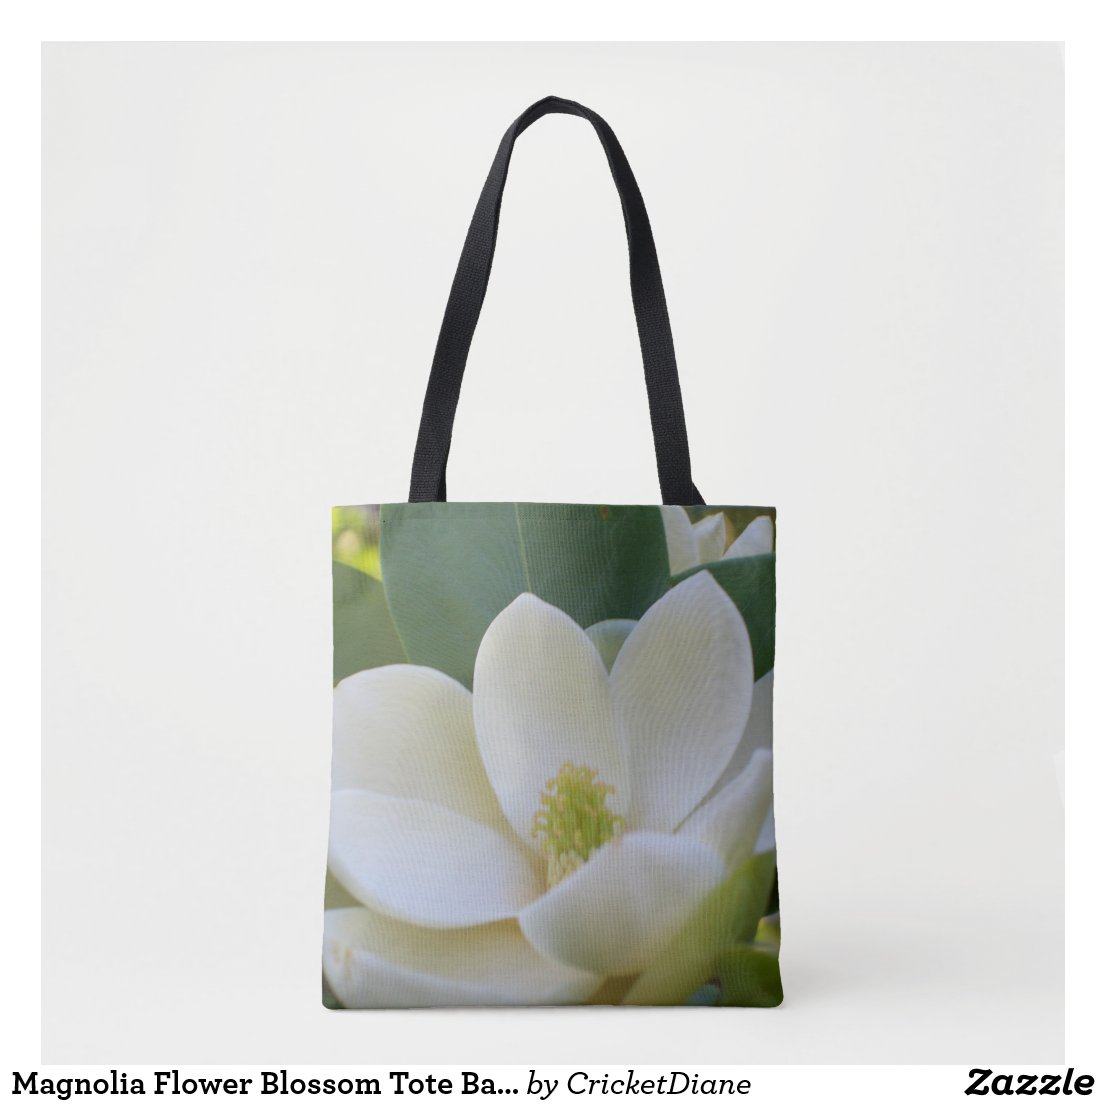 Magnolia Flower Blossom Tote Bag Gift for Her